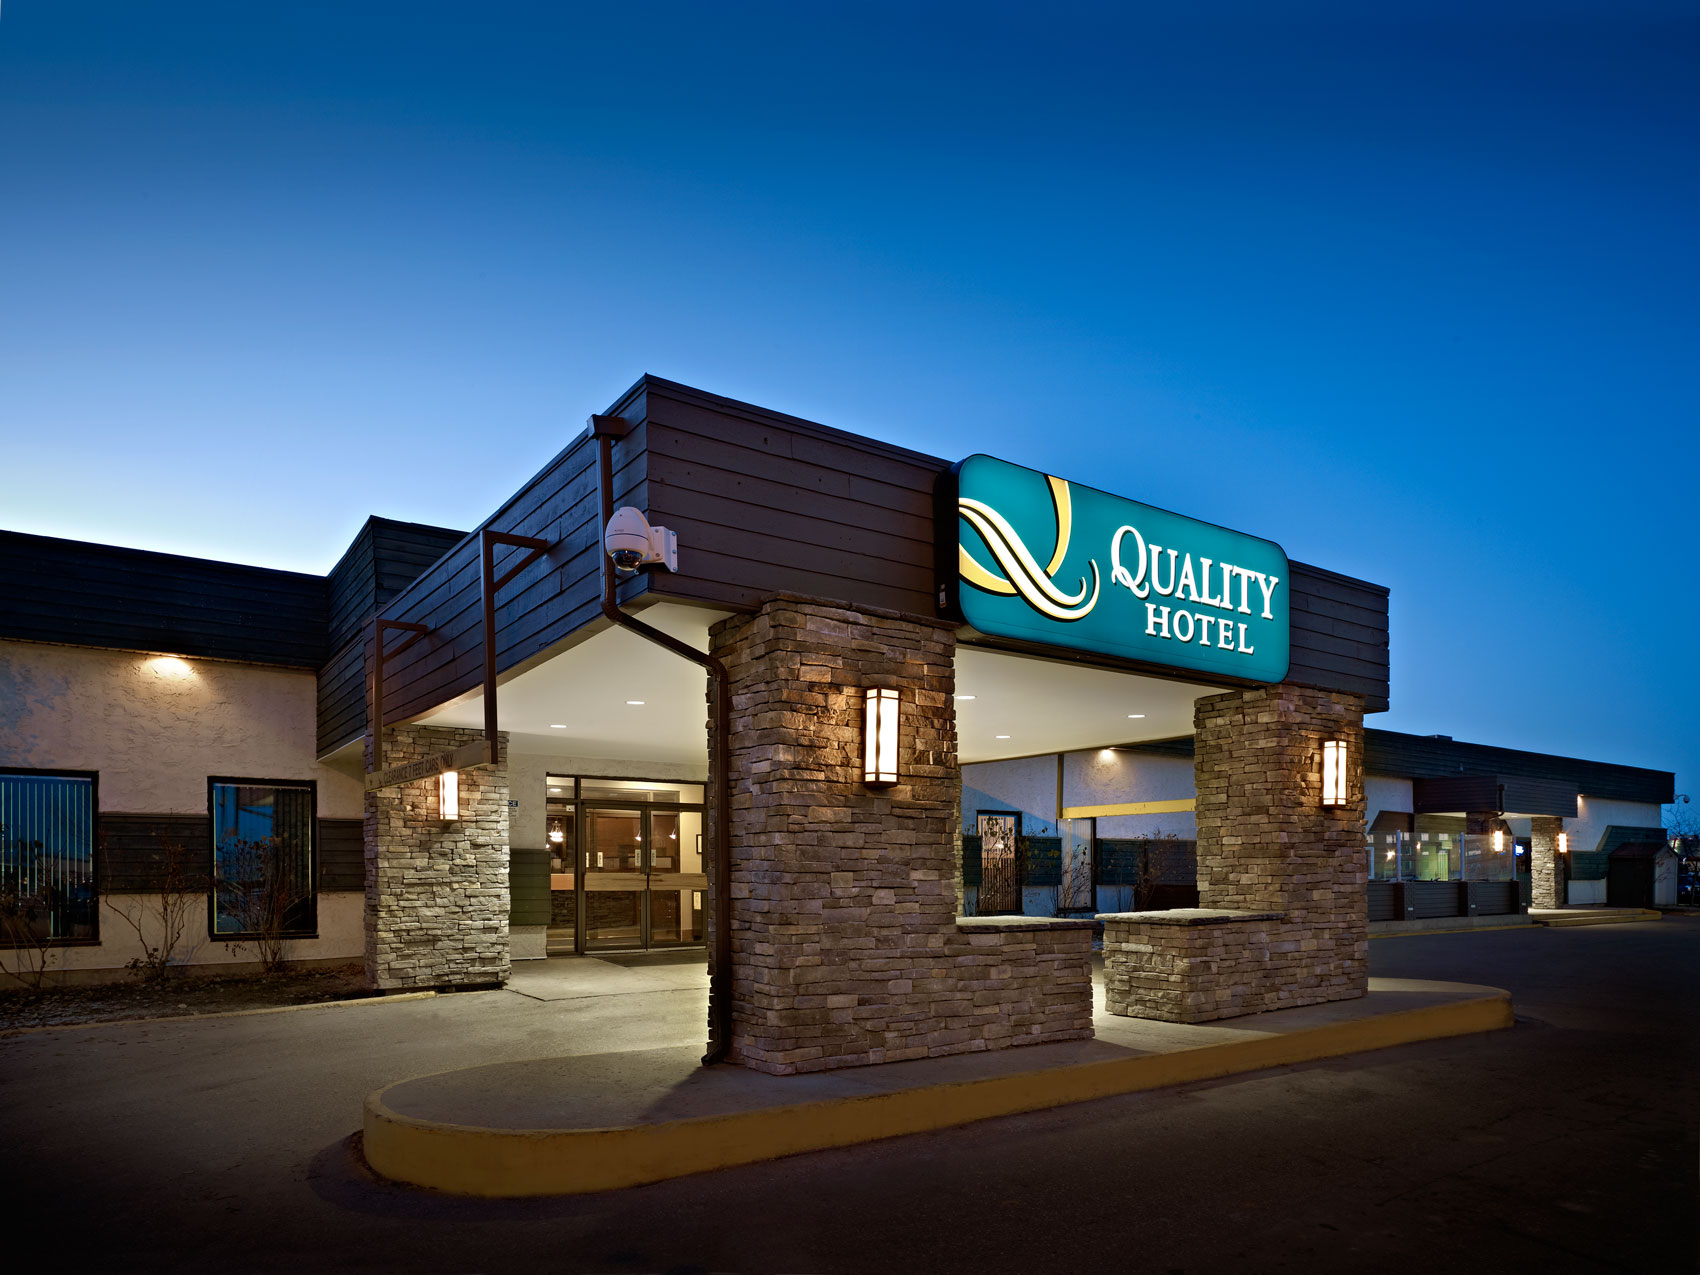 Fort Mcmurray Hotel Quality Hotel Fort Mcmurray Hotel